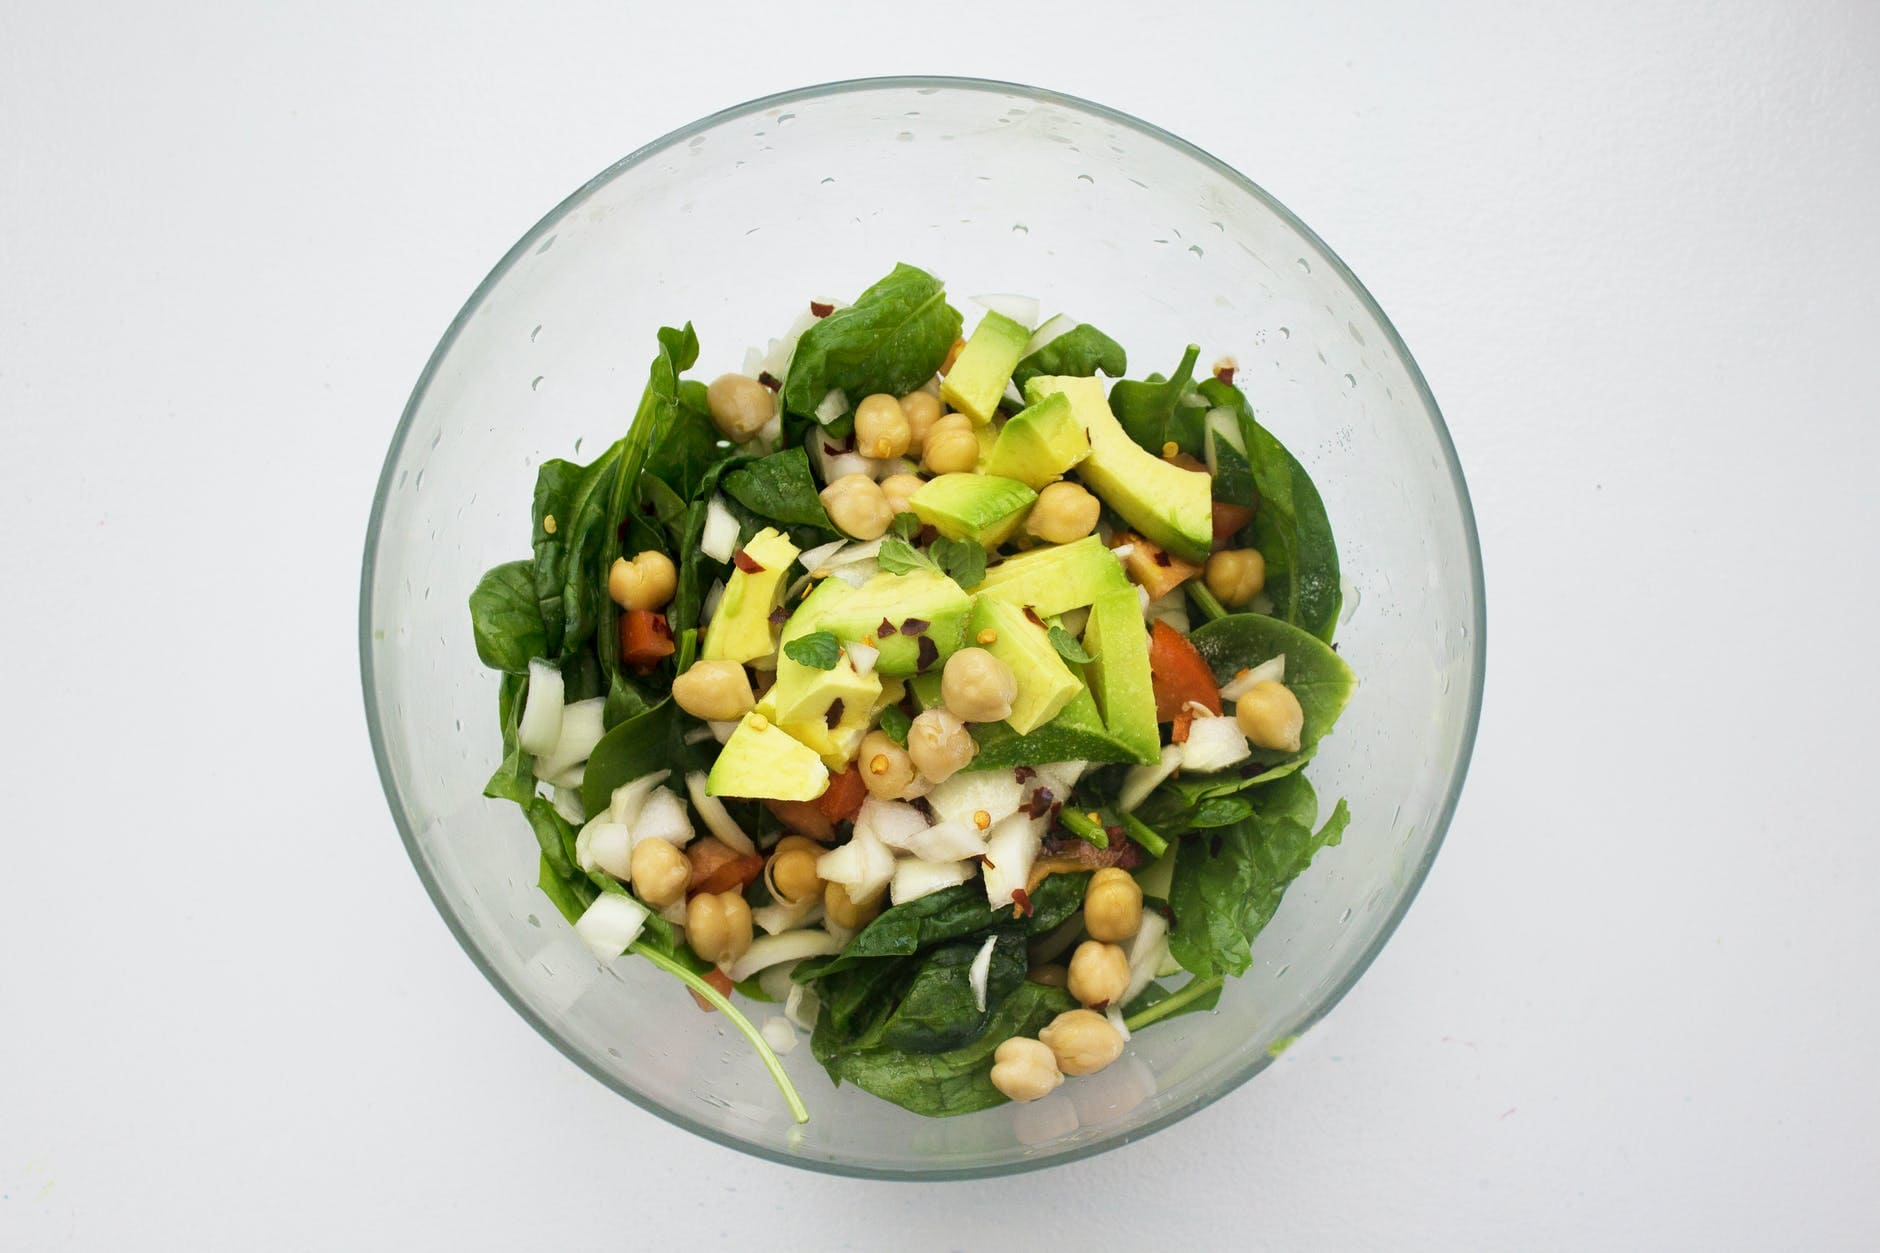 How to make chickpea salad with vegetables